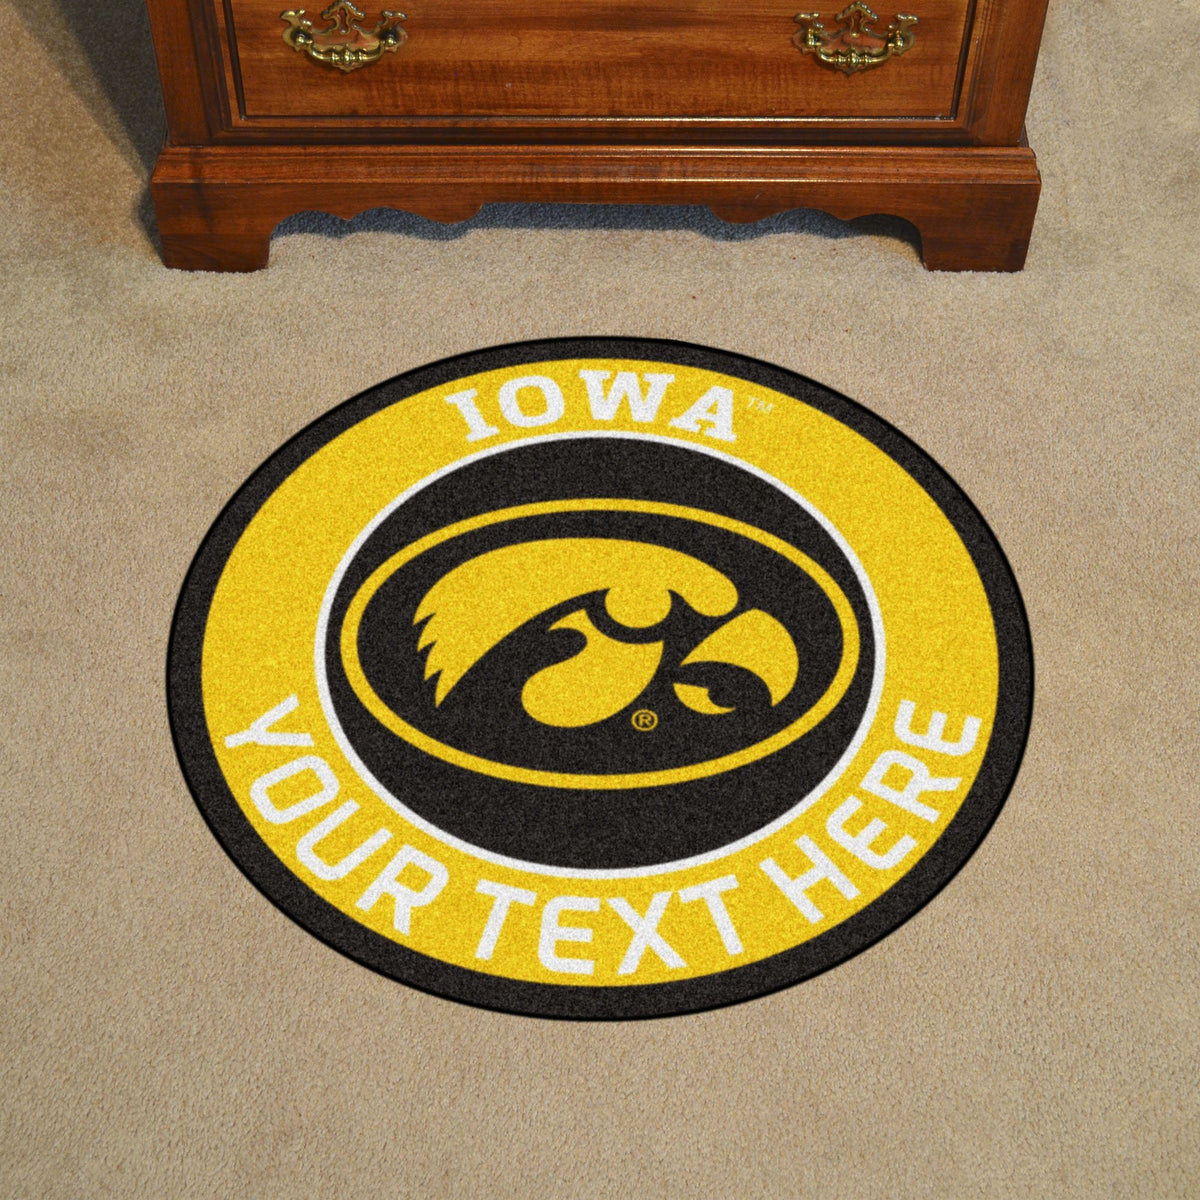 Collegiate Personalized Roundel Mat Personalized Roundel Mat Fan Mats University of Iowa